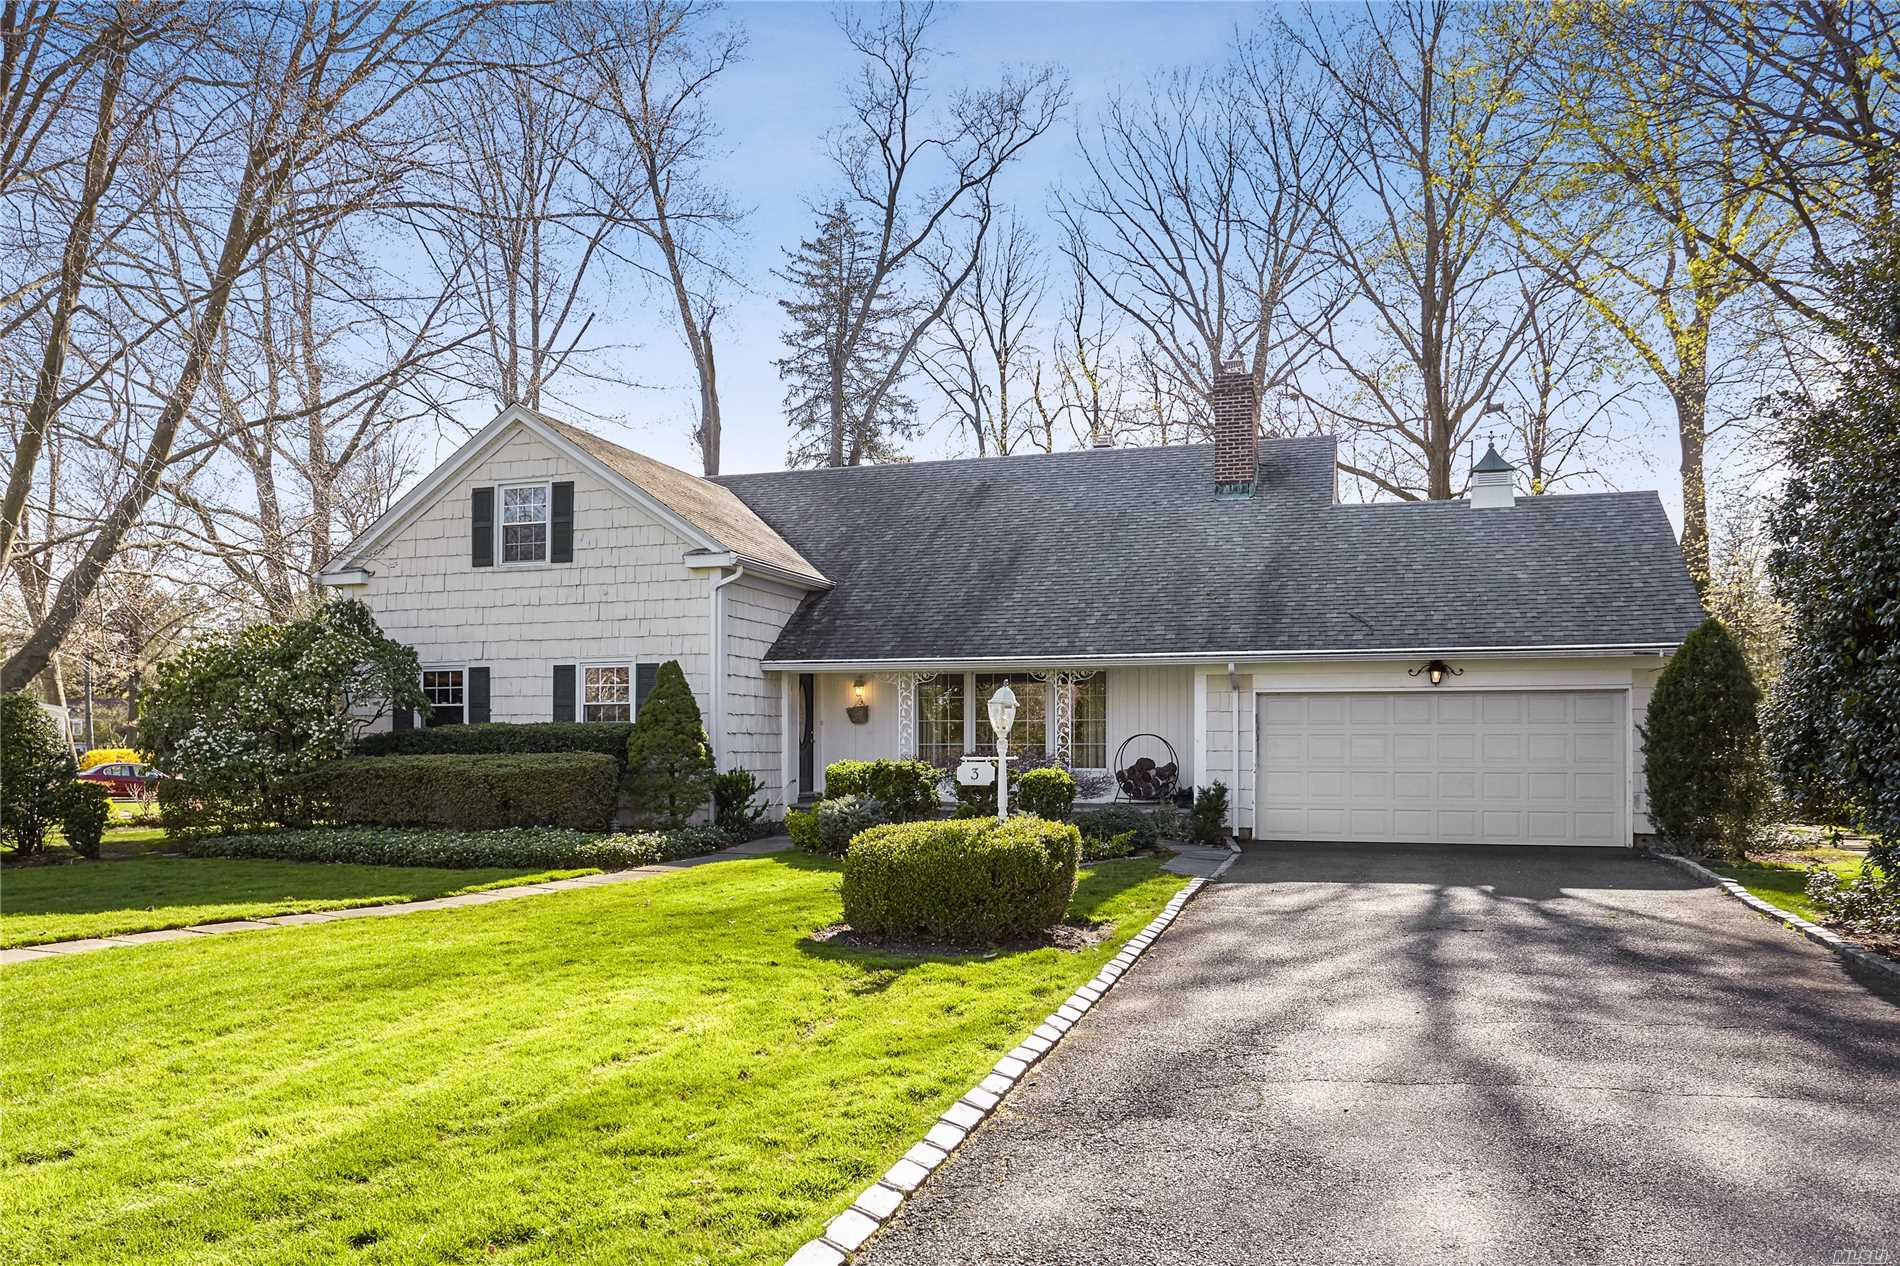 Lovely Barnes Lane Colonial waiting to be yours! Two first floor master bedroom, options. Five BR's total. Sun room addition. two wood burning fireplaces, updated kitchen, three full baths, private fenced yard.